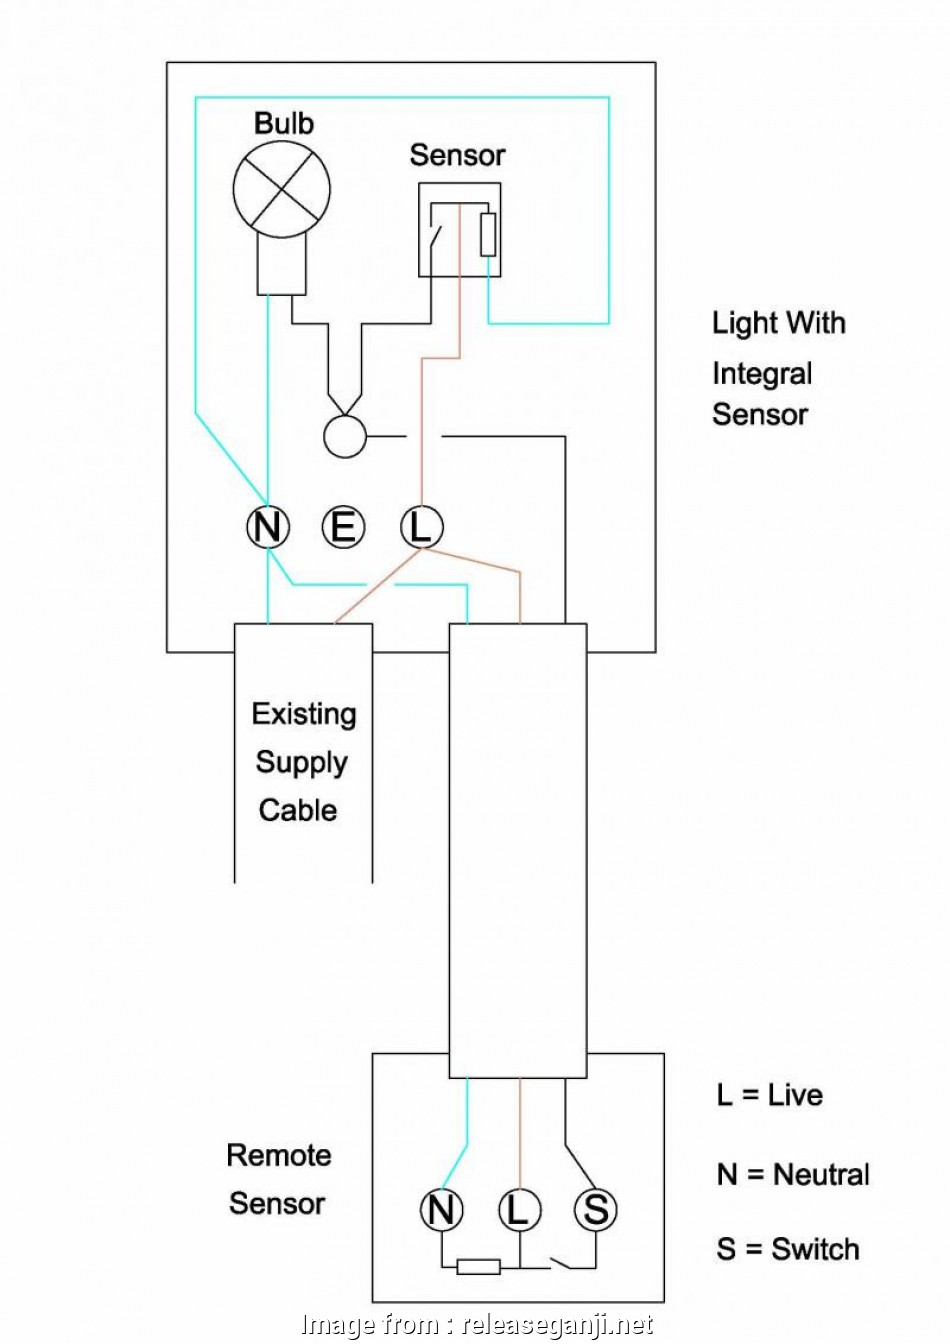 how to wire a new light switch Motion Sensor Lights Wiring Diagram, Light Switch, Me Mesmerizing A 12 Popular How To Wire A, Light Switch Ideas